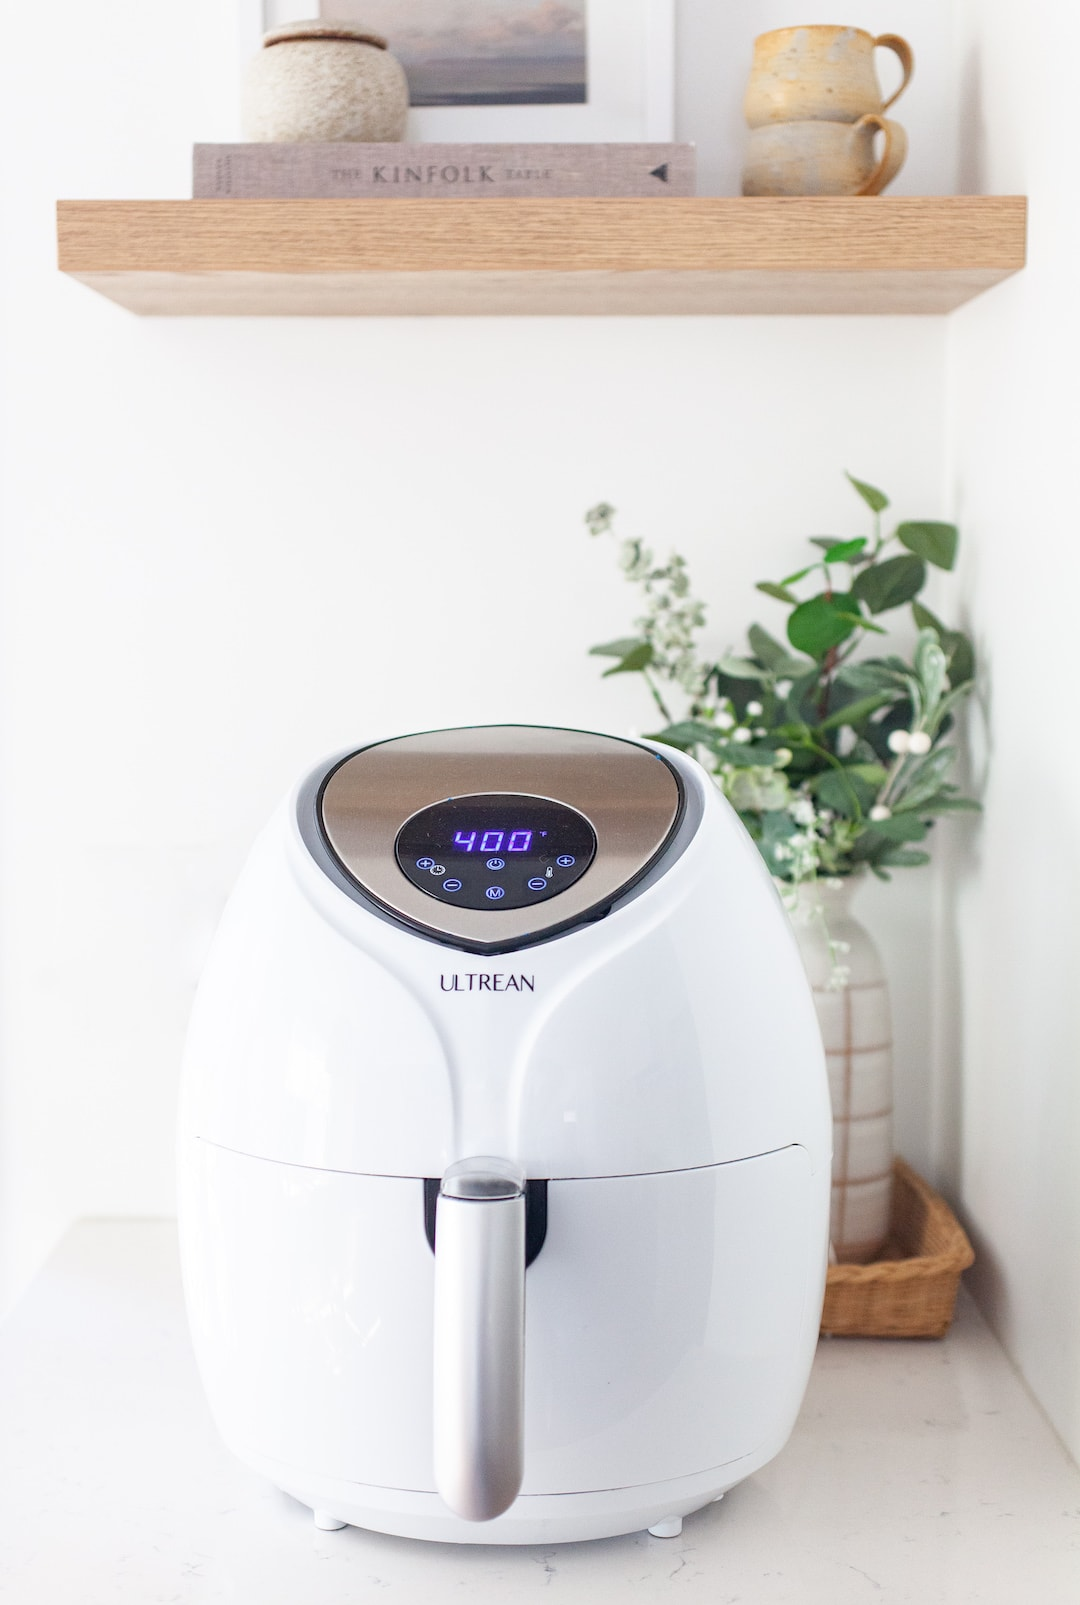 Air fryer on a countertop in the kitchen